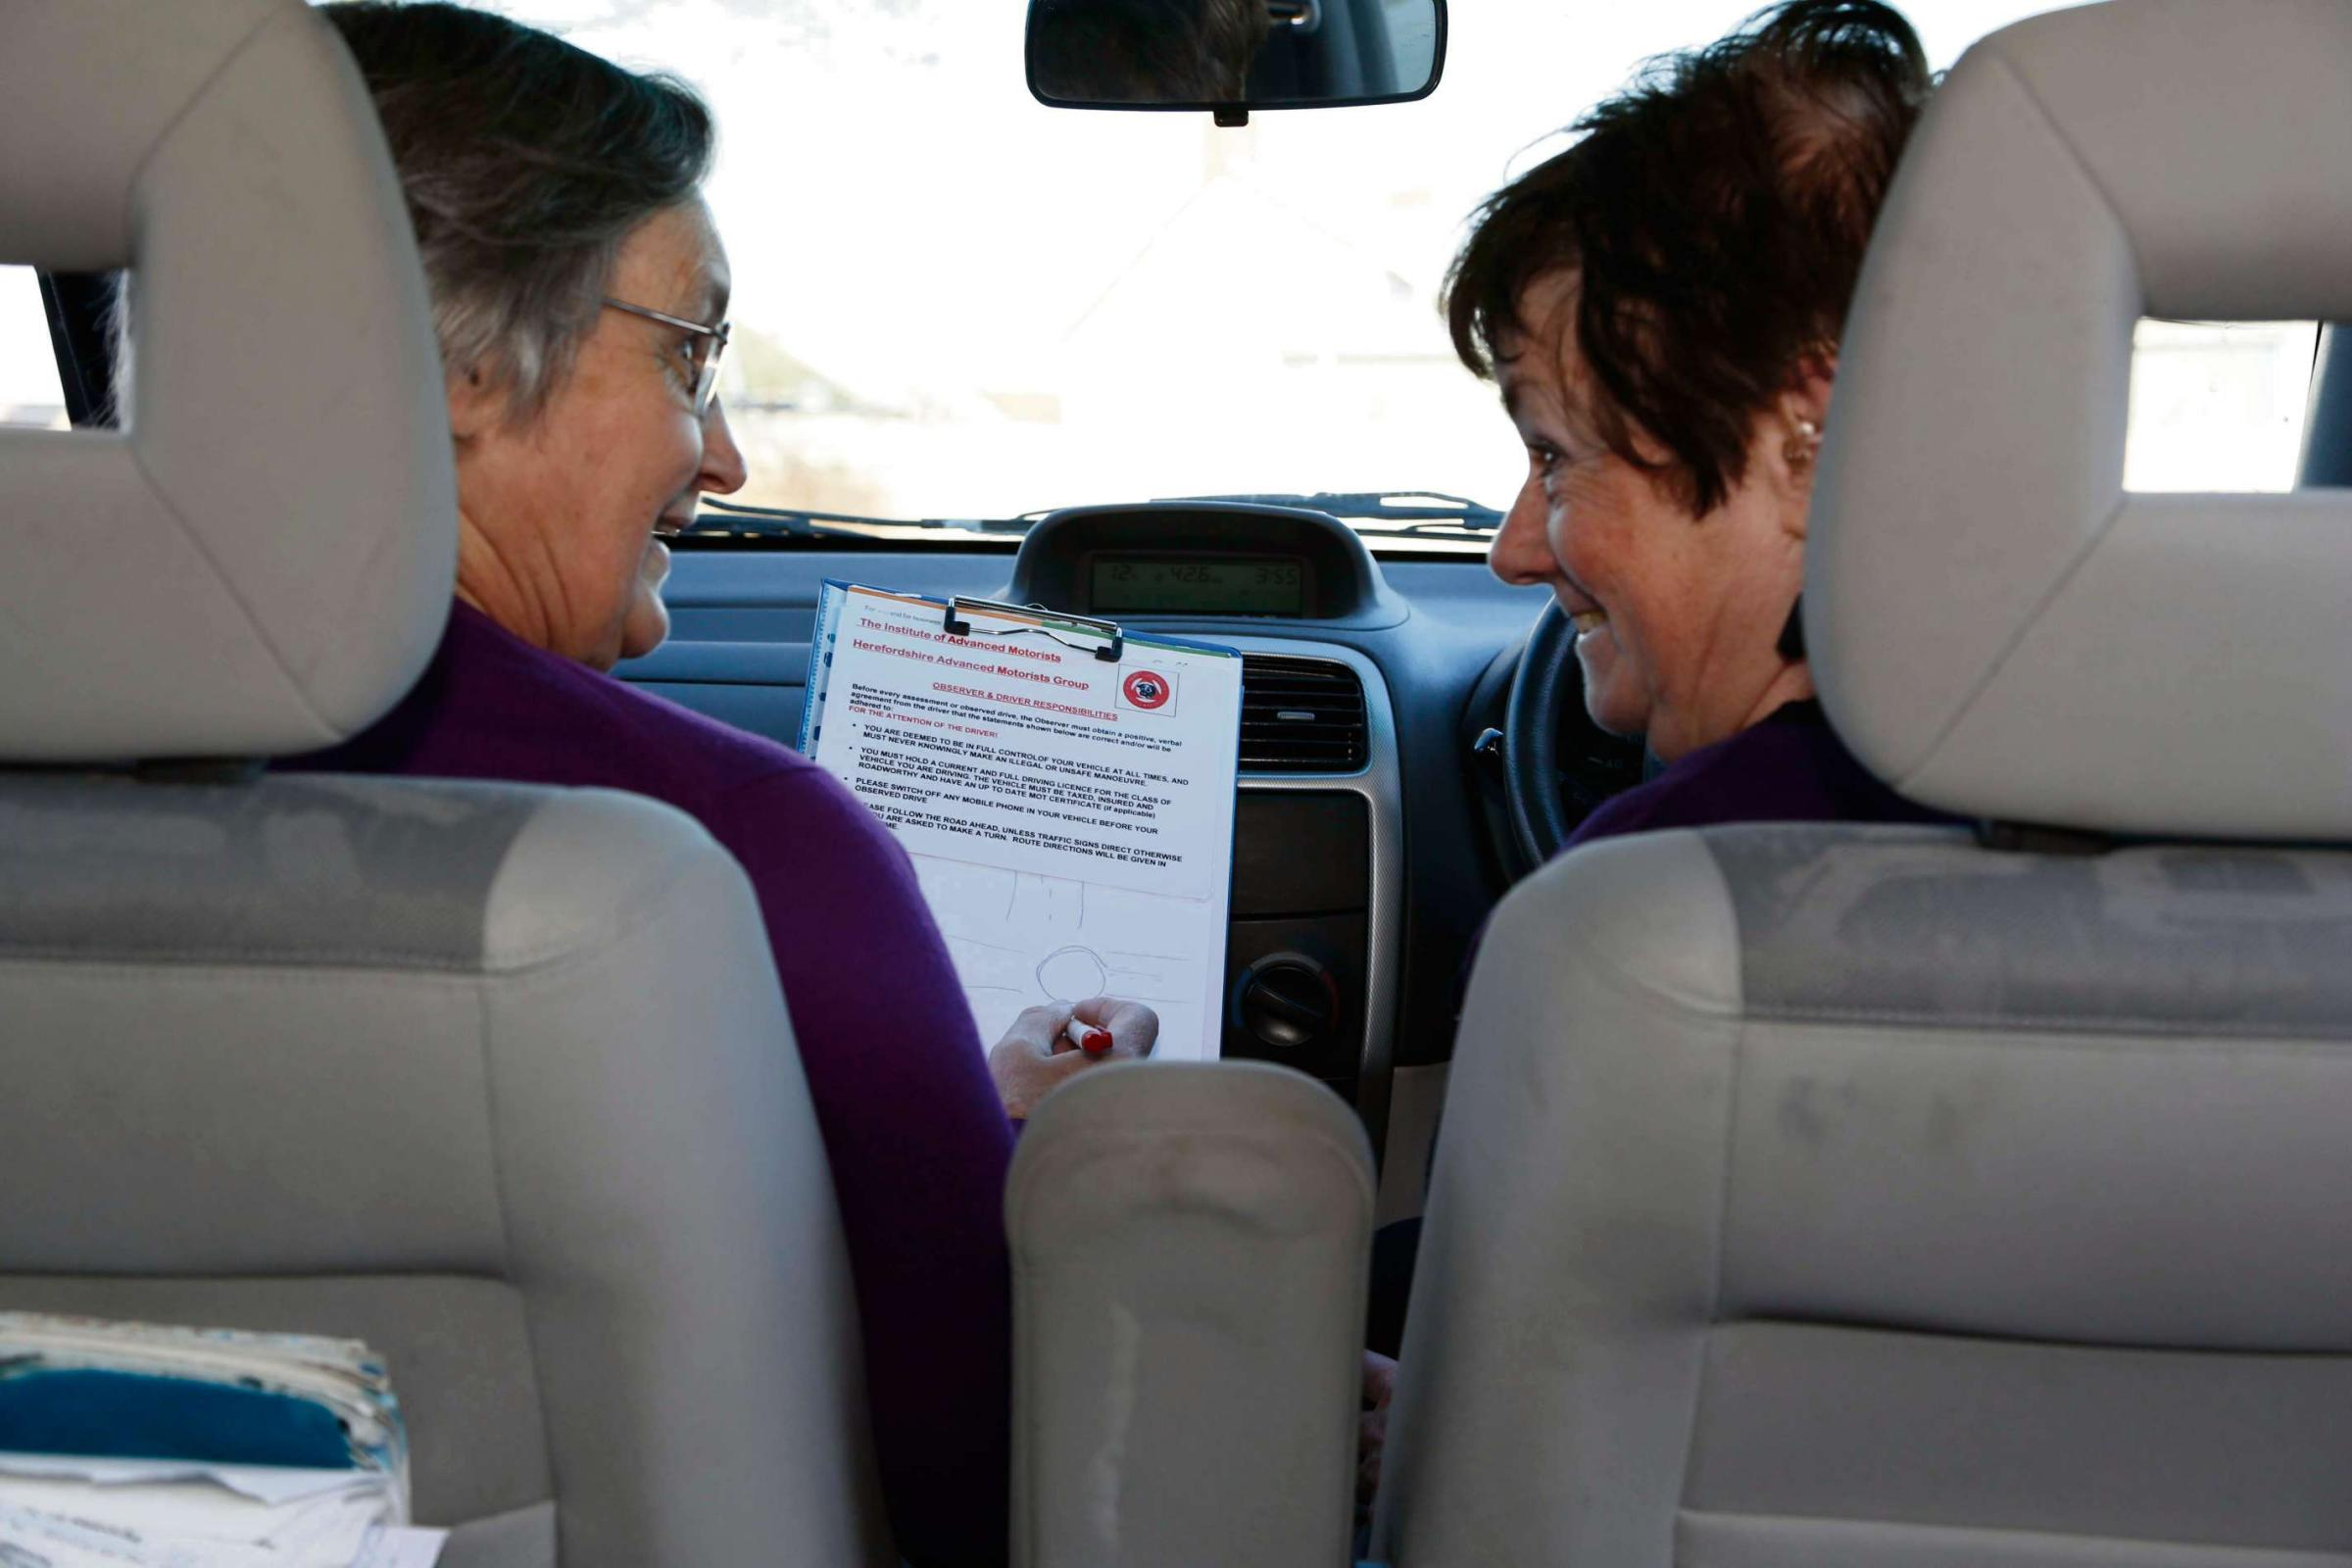 Older drivers are invites to refresh their skills at the Much Birch event.